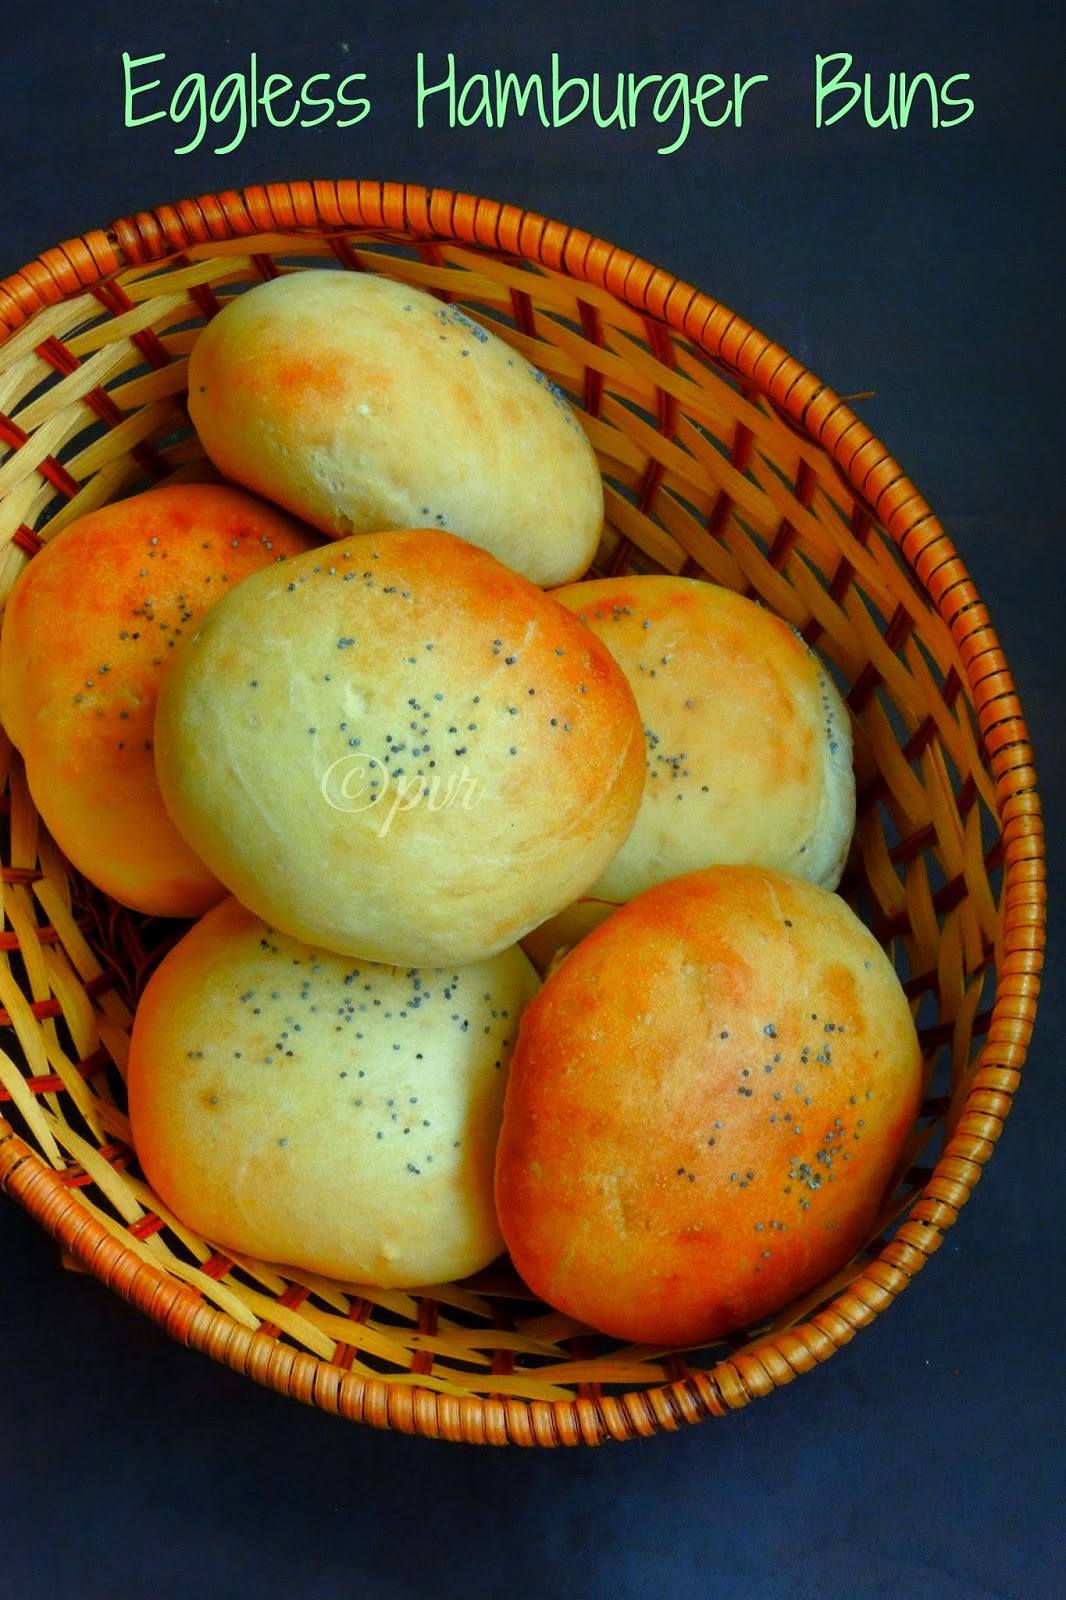 Eggless Hamburger Buns, Hamburger buns without eggs, Homemade burger buns